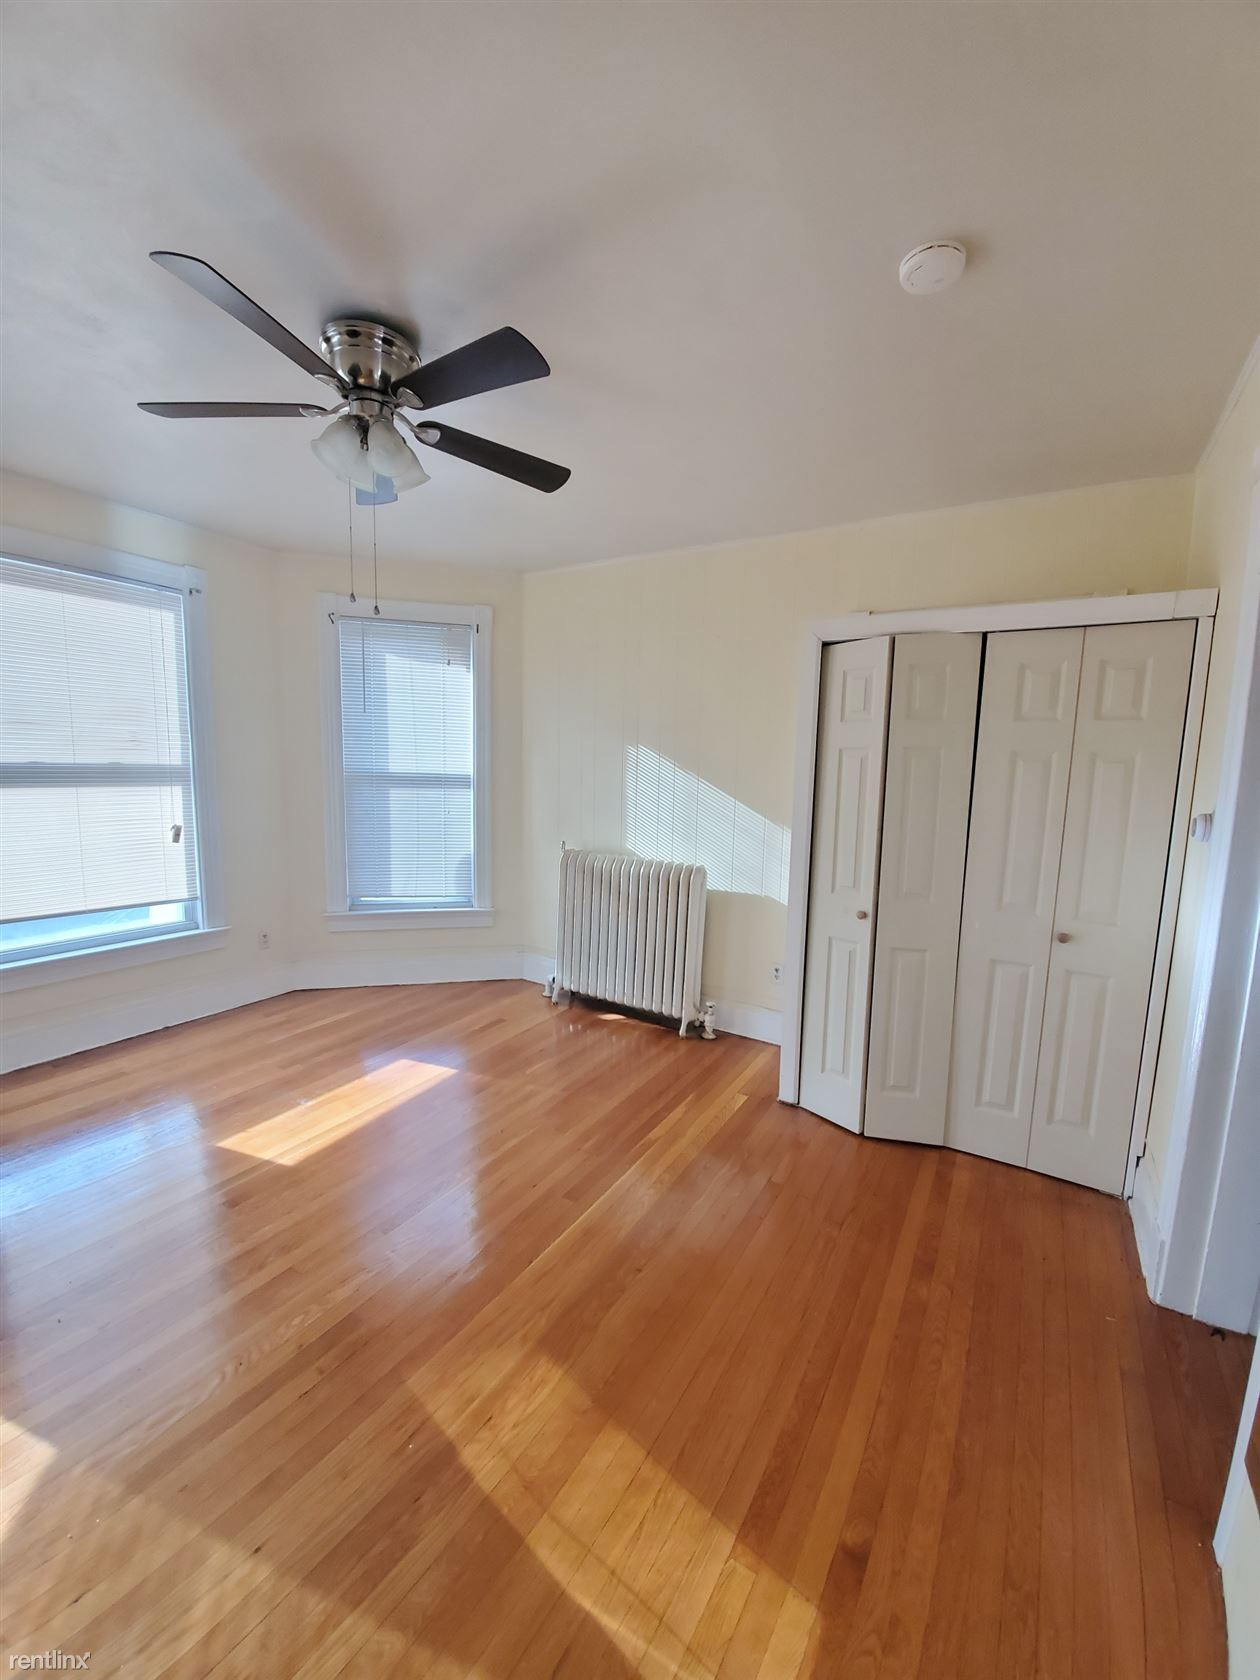 383 Winthrop Ave Apt 2D, New Haven, CT - $1,100